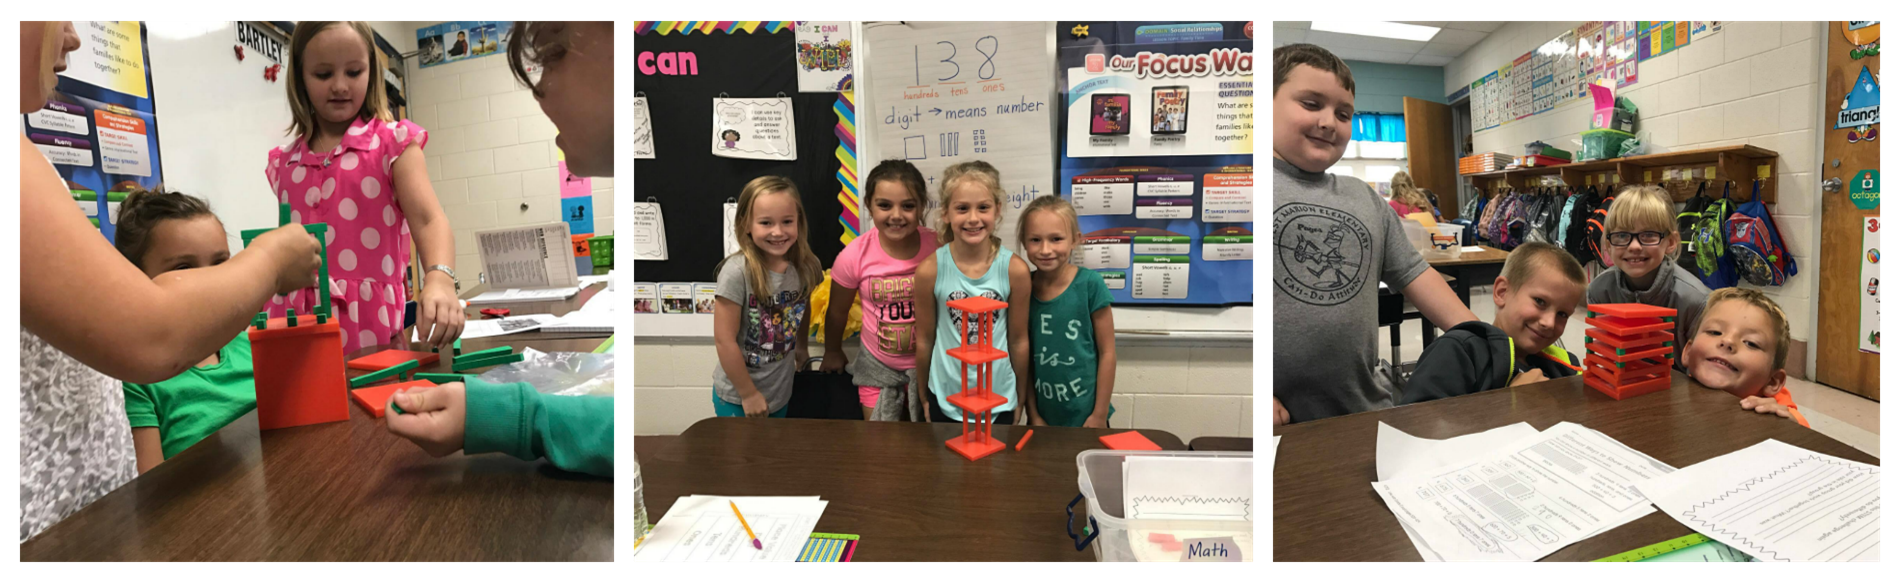 Mrs. Bartley's second grade class at WMES built structures that could stand on its own using base 10 blocks (5-hundreds, 10-tens, 10-ones).